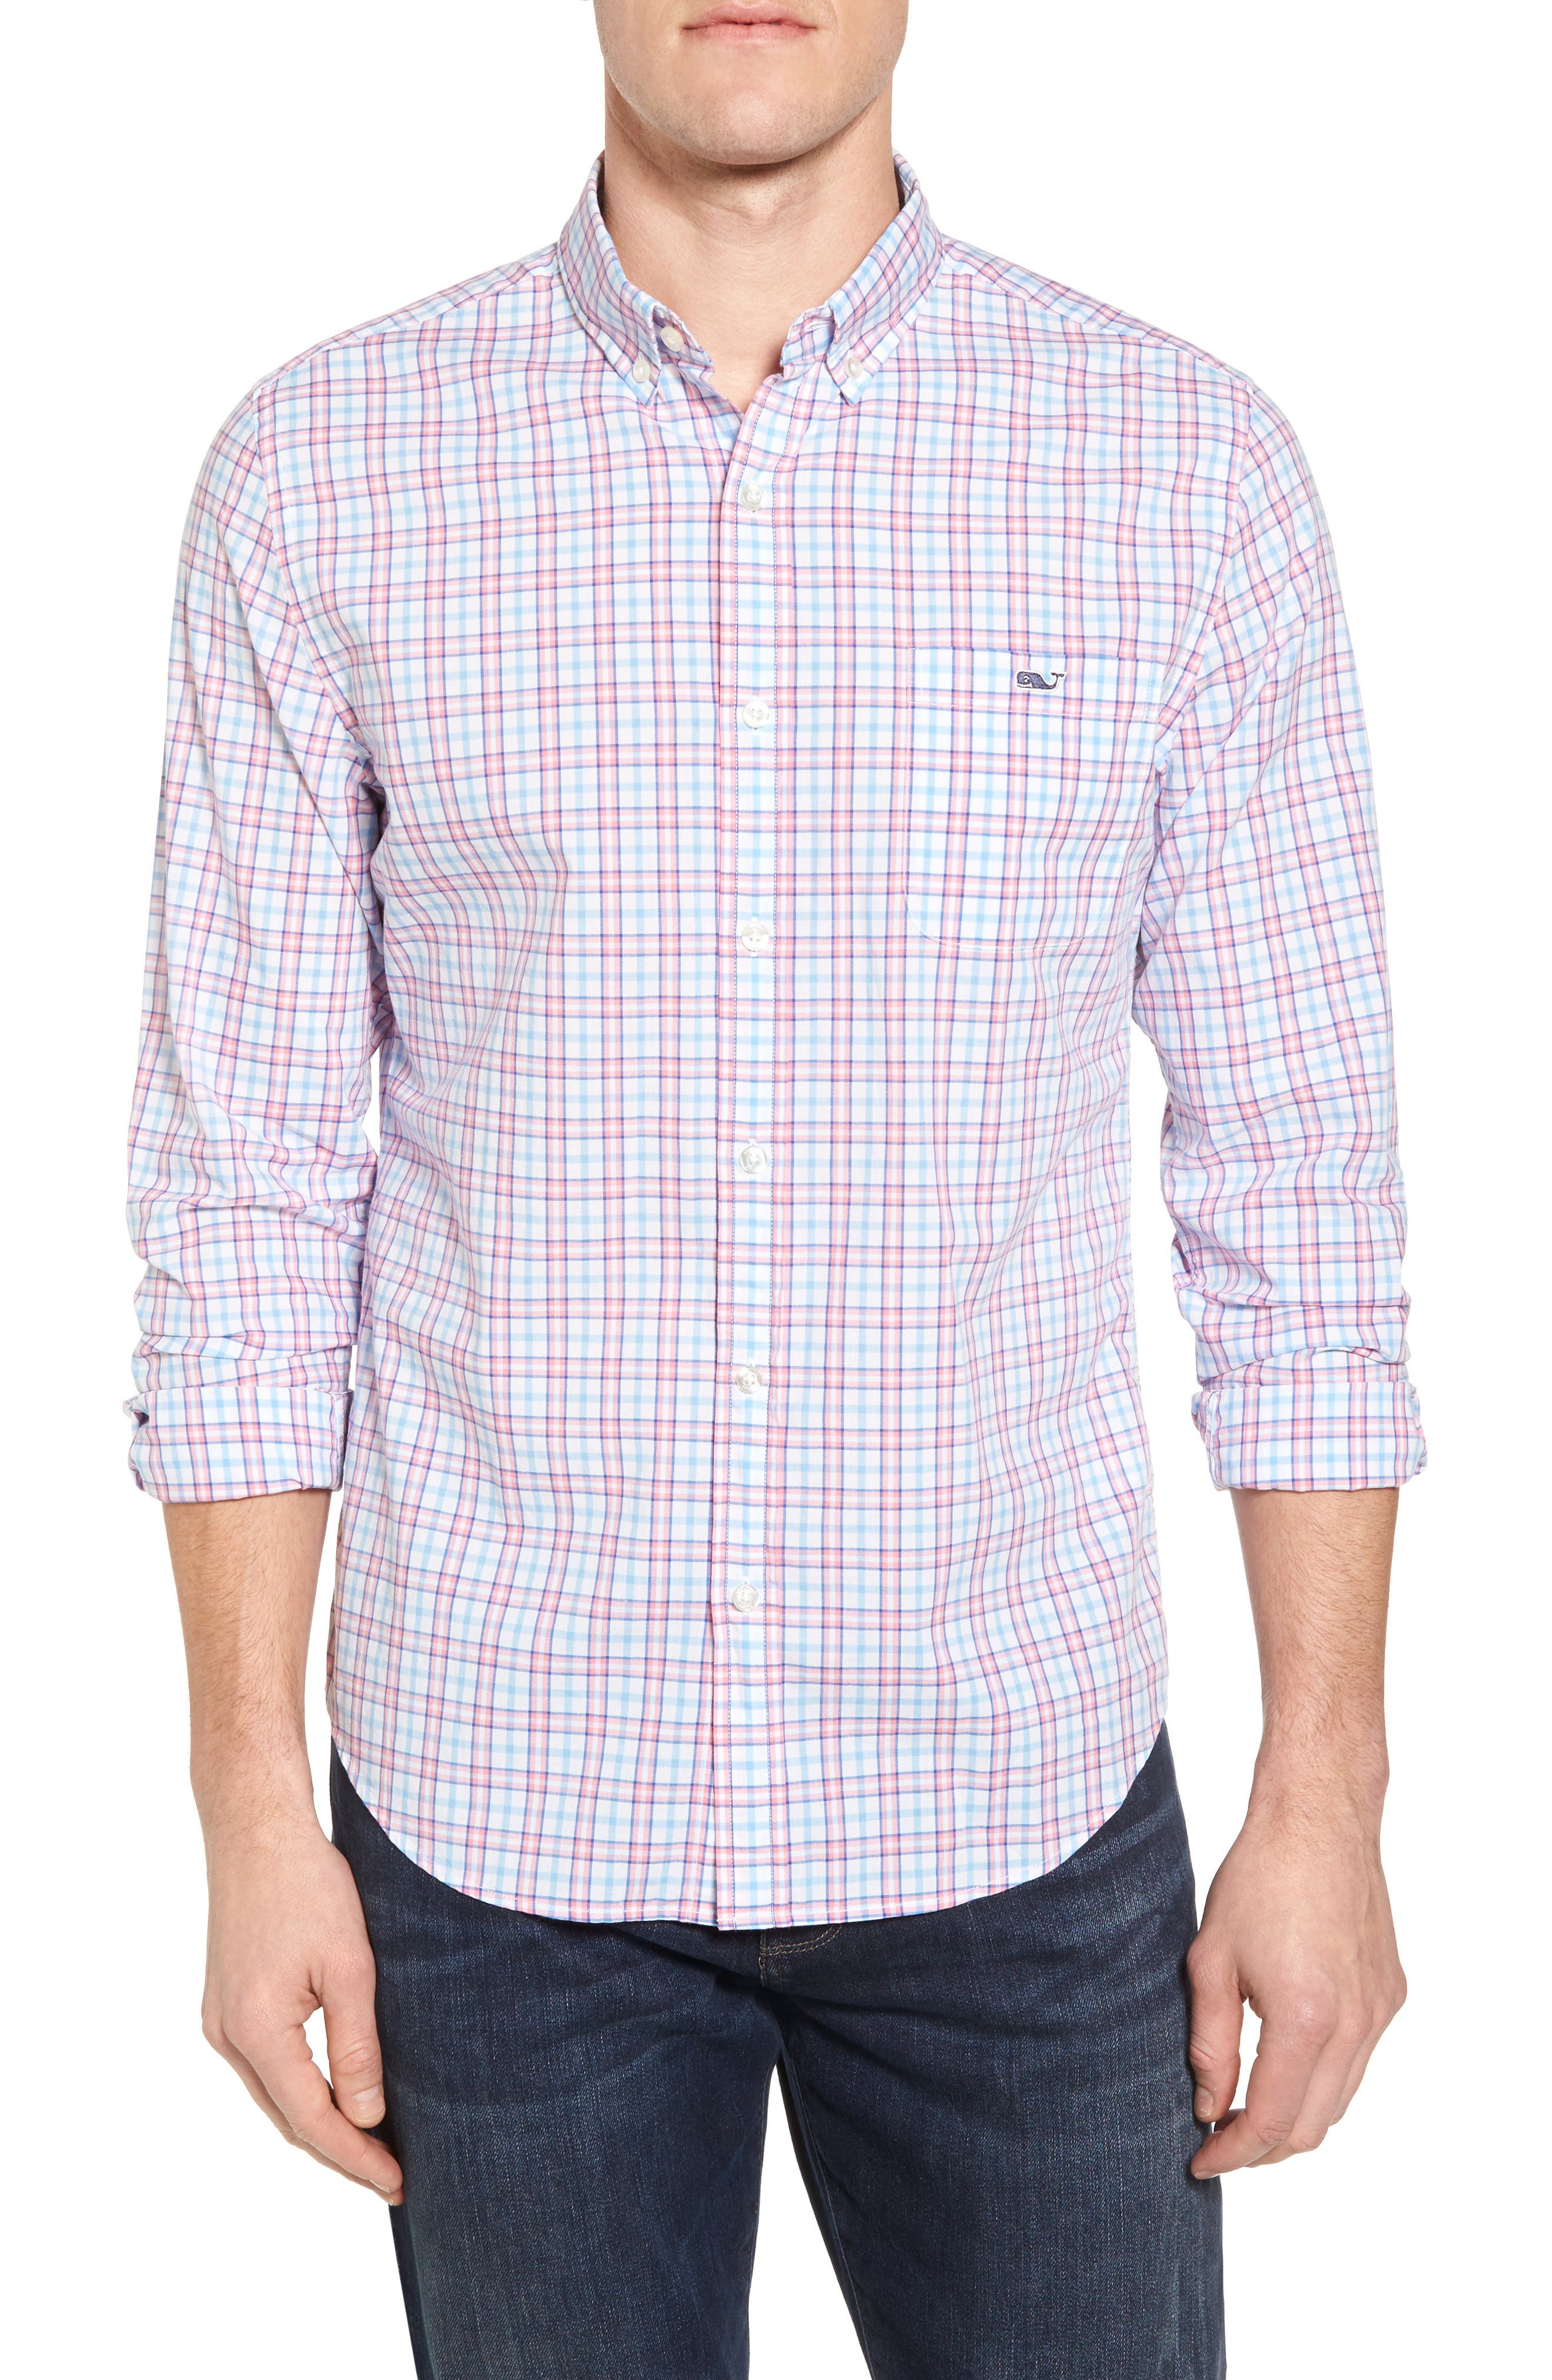 Kennard Tucker Slim Fit Plaid Sport Shirt,                             Main thumbnail 1, color,                             Bahama Breeze